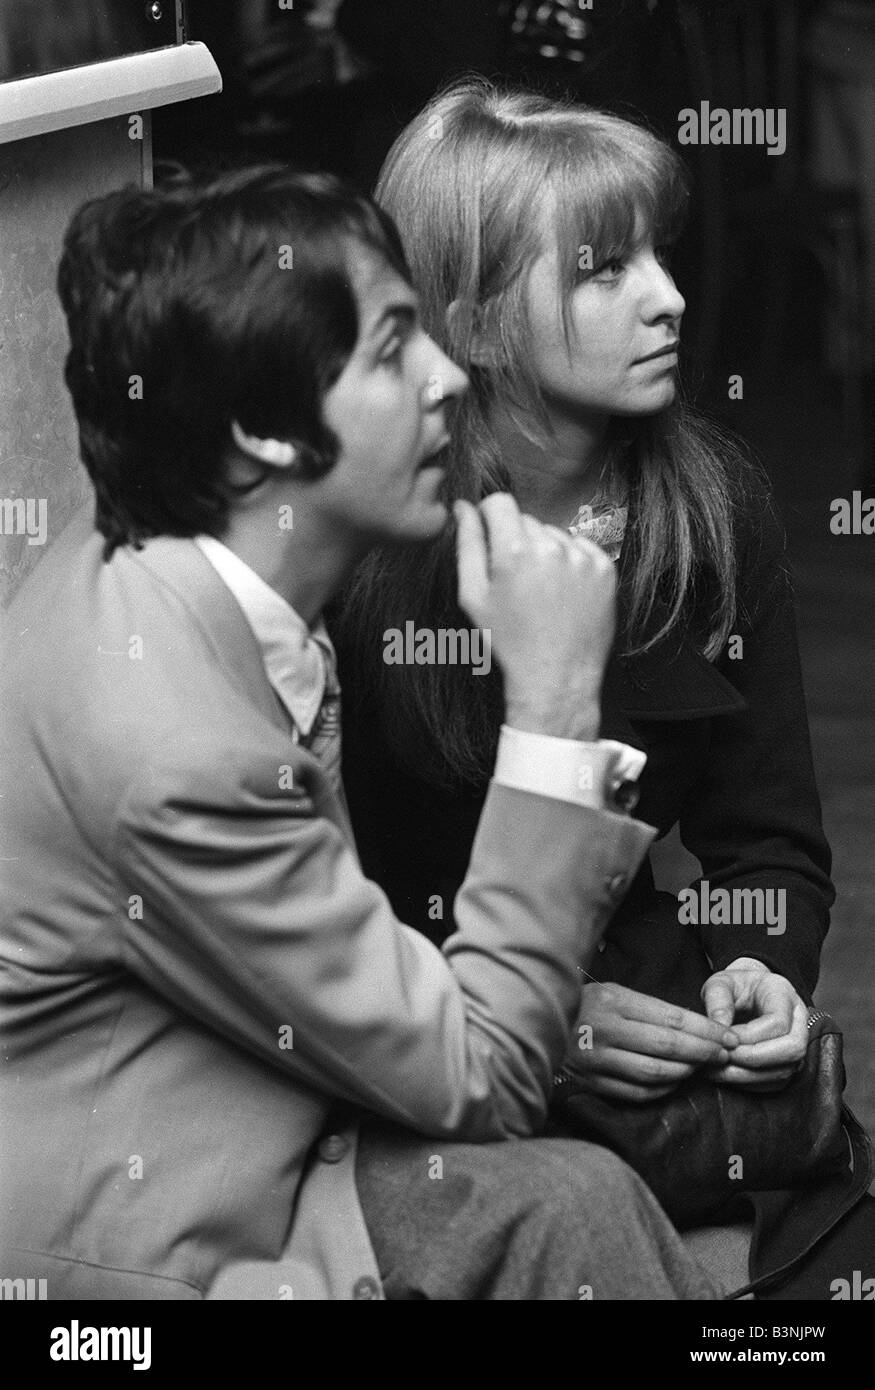 Paul McCartney Of The Pop Group Beatles With Girlfriend Jane Asher 1968